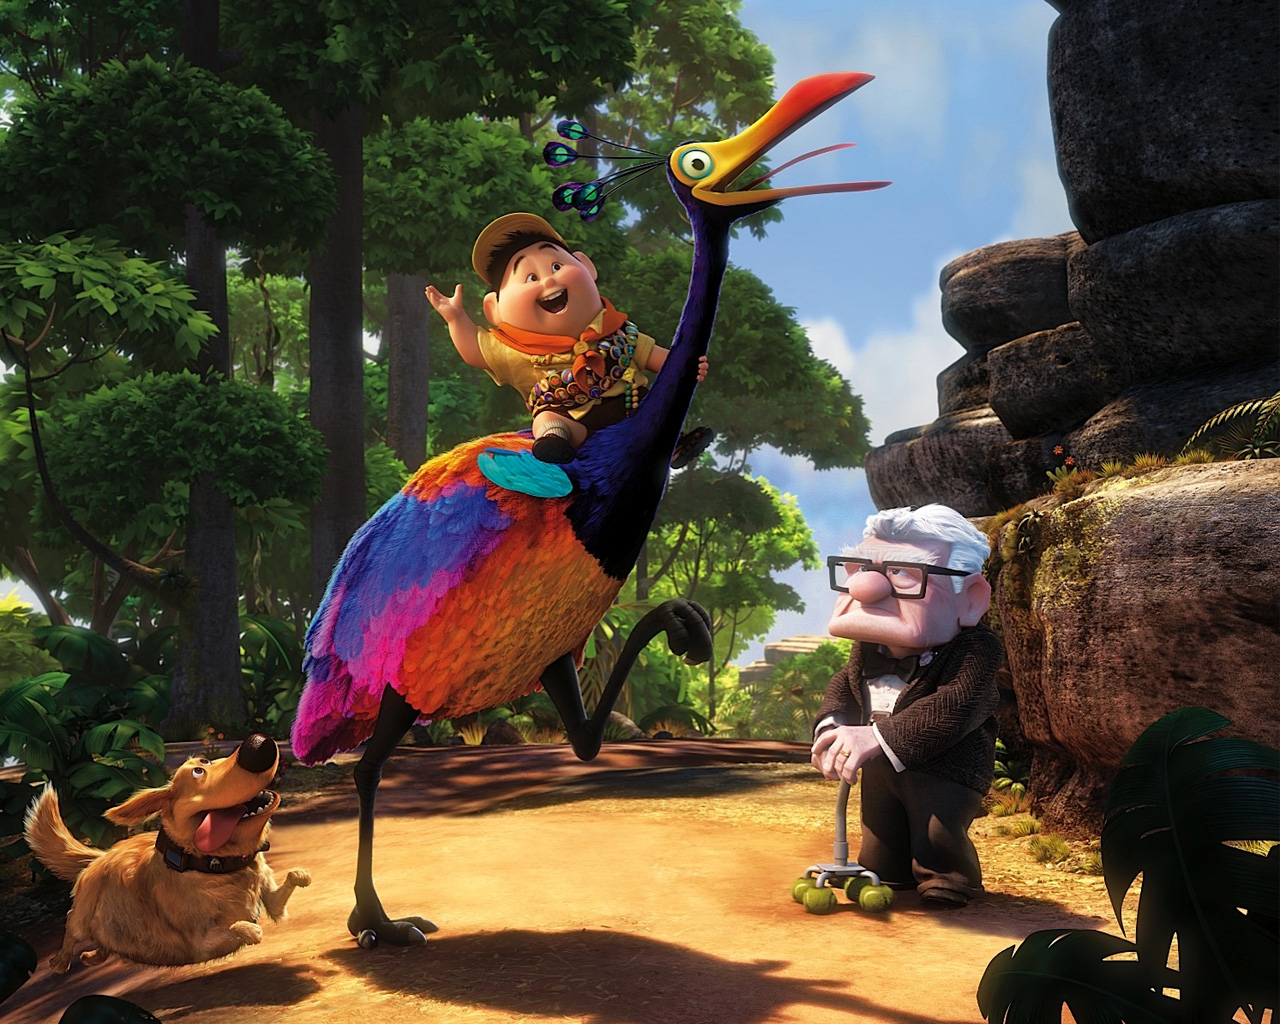 dreamspot up up pixar animation hd wallpapers download wallpapers 1280x1024